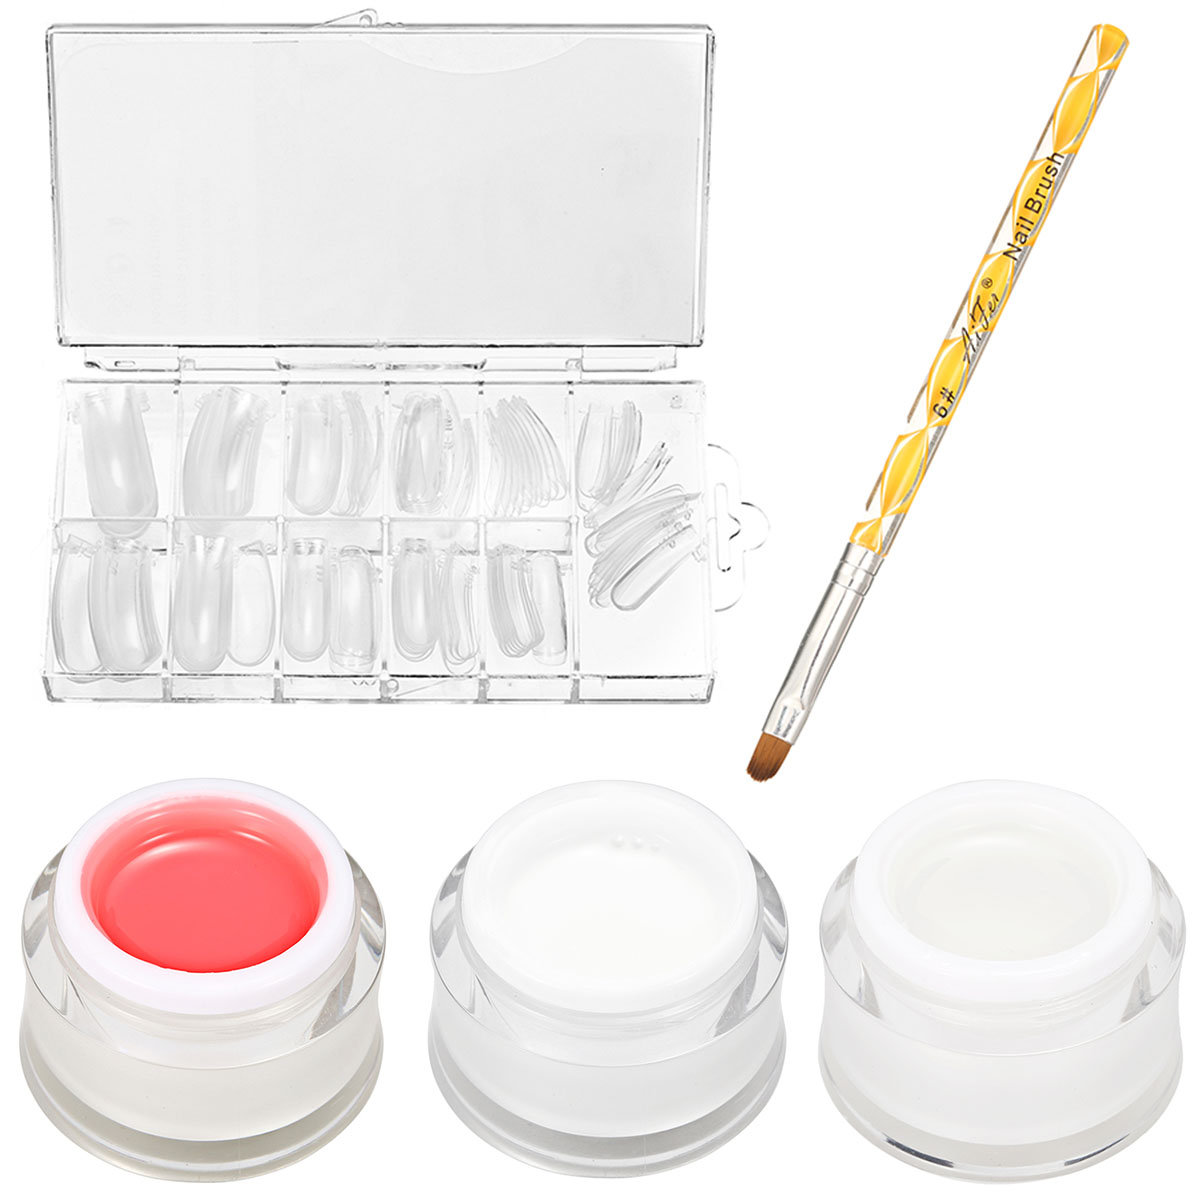 15ml Nail Gel Quick Builder Extension UV Gel Brush With 100 Pieces False Tips Kit